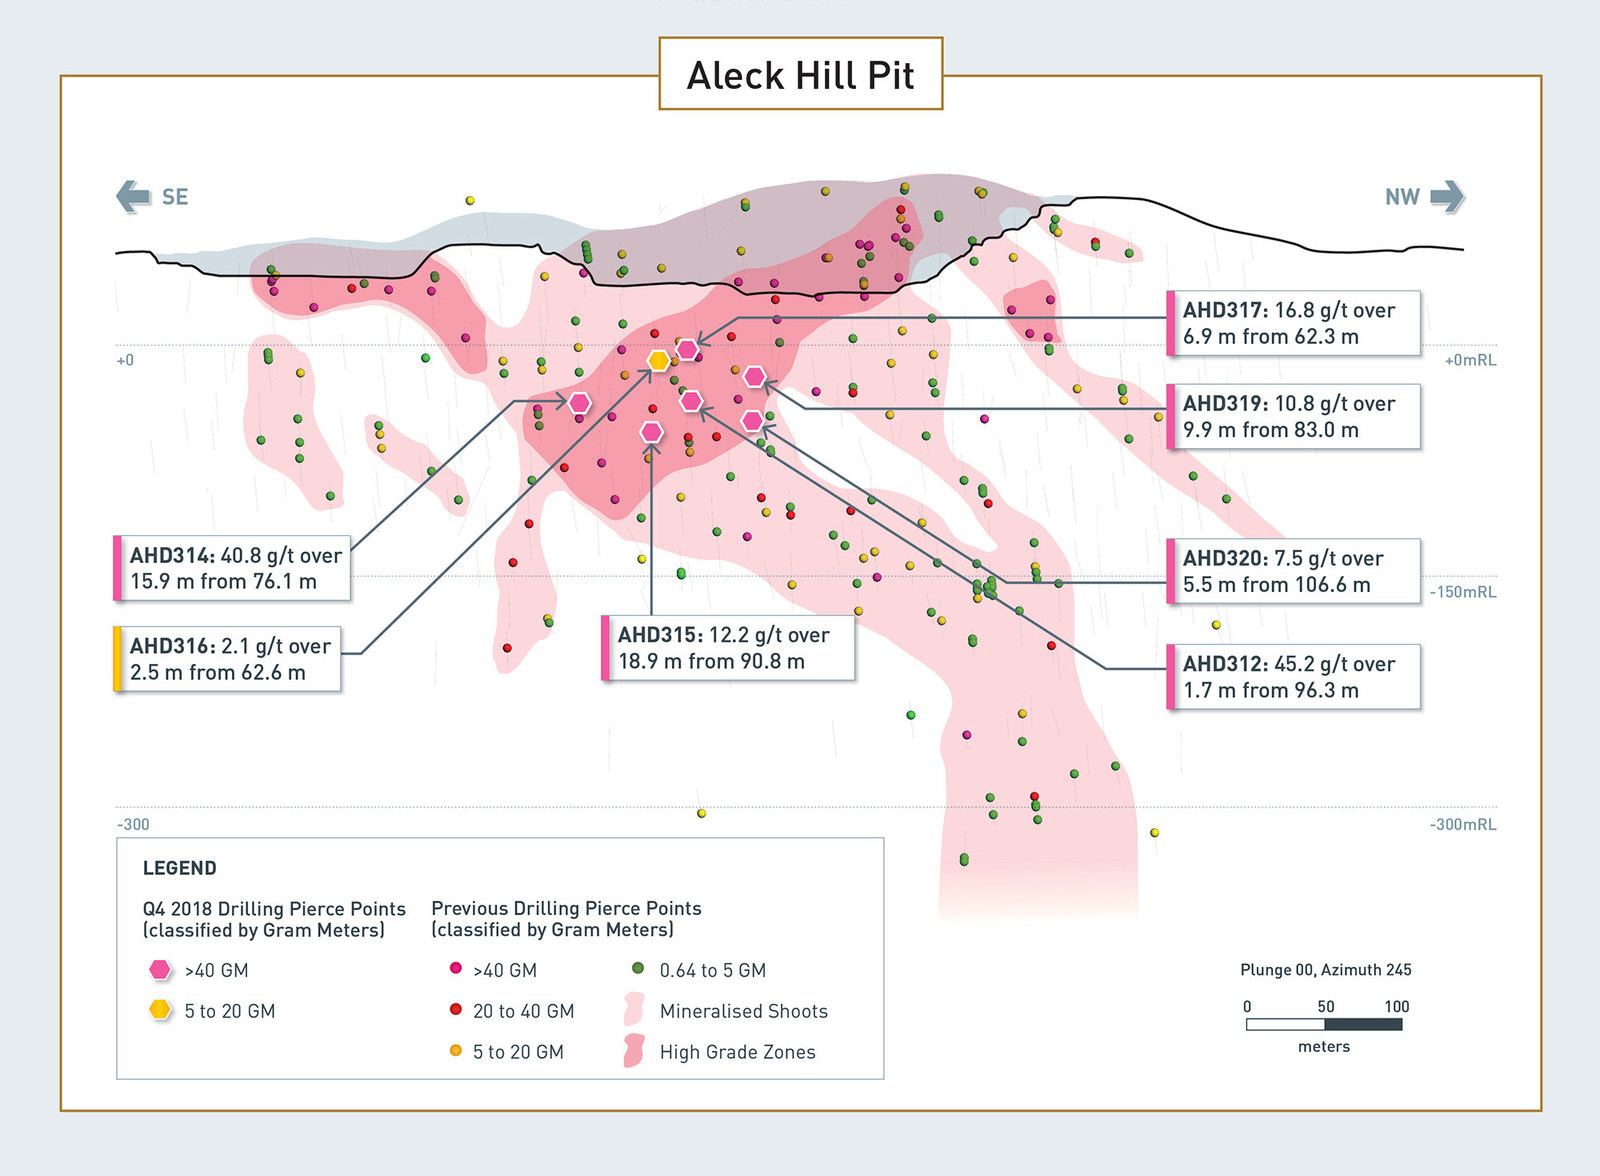 Details of Aleck Hill Drilling Results